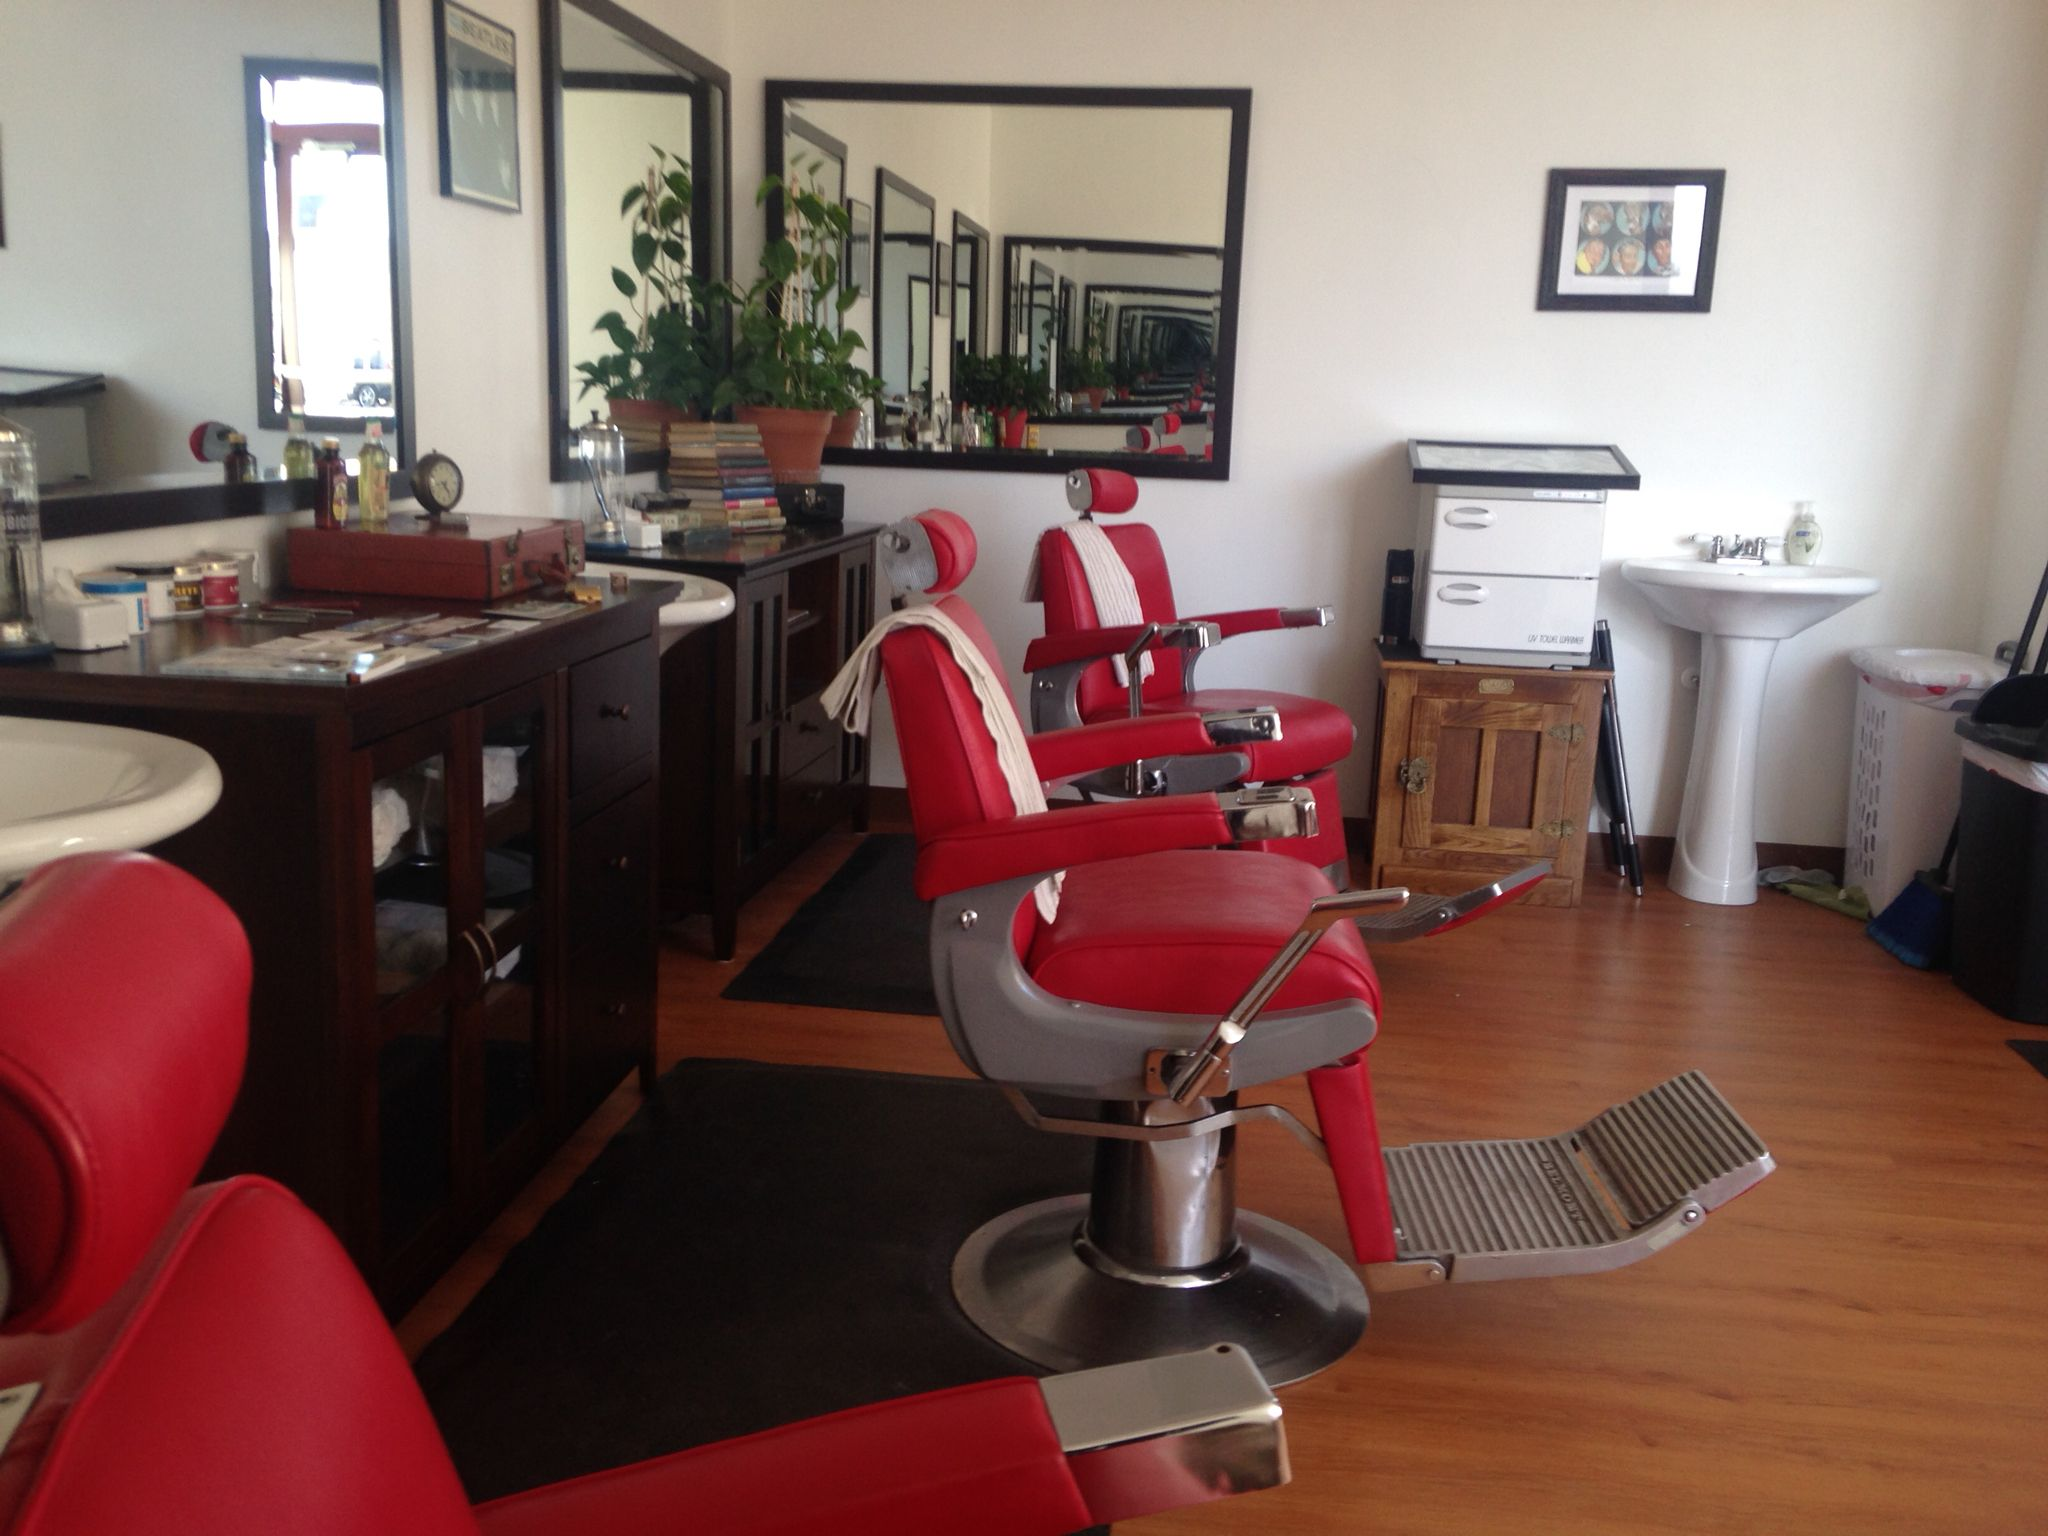 Belmont barber chairs located in Dave s Barber Shop in daybreak